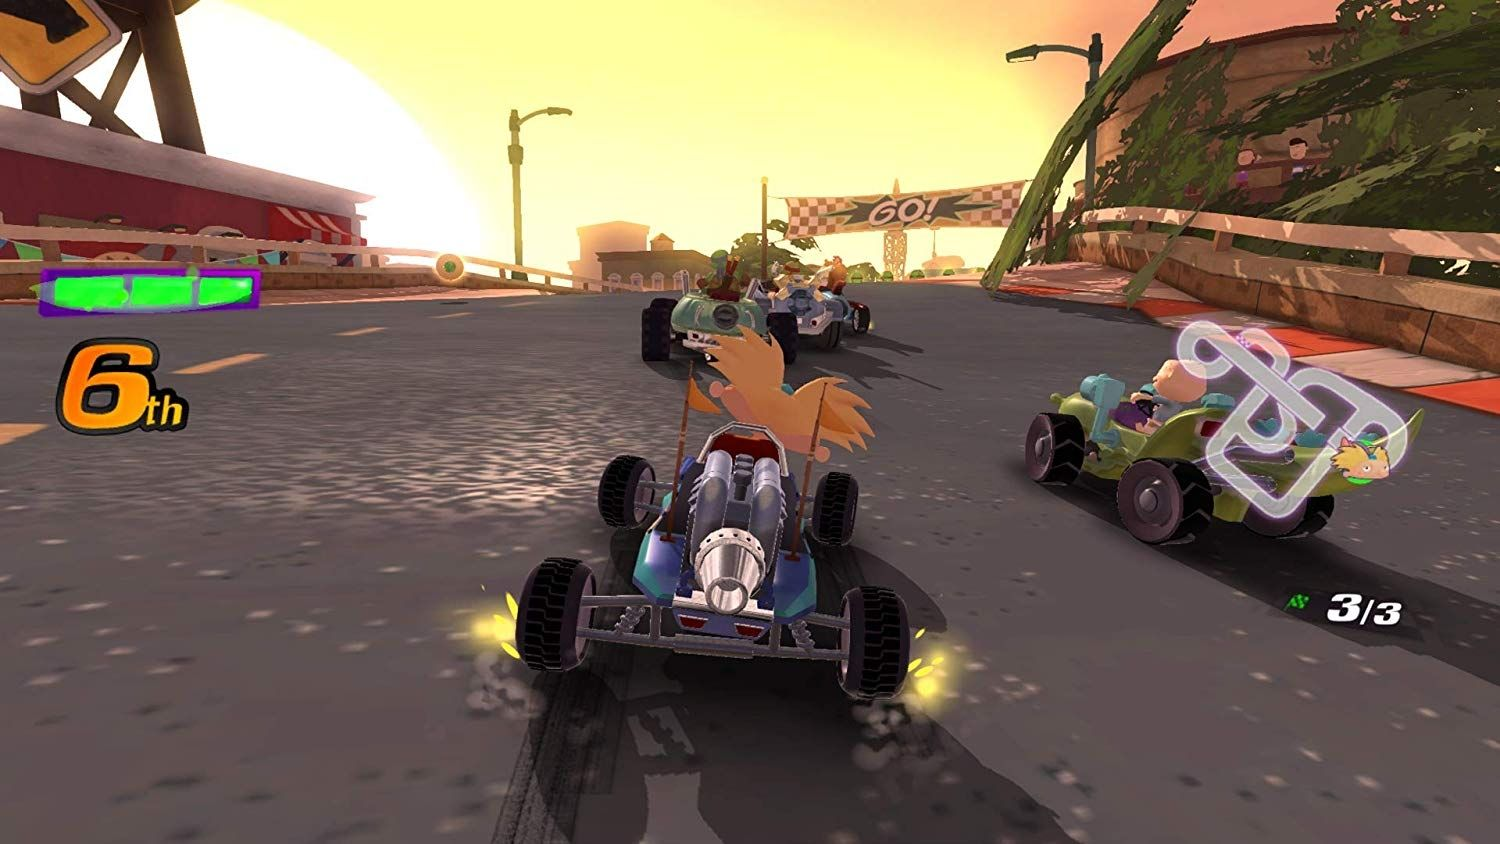 Nickelodeon Kart Racers (PS4) - 6